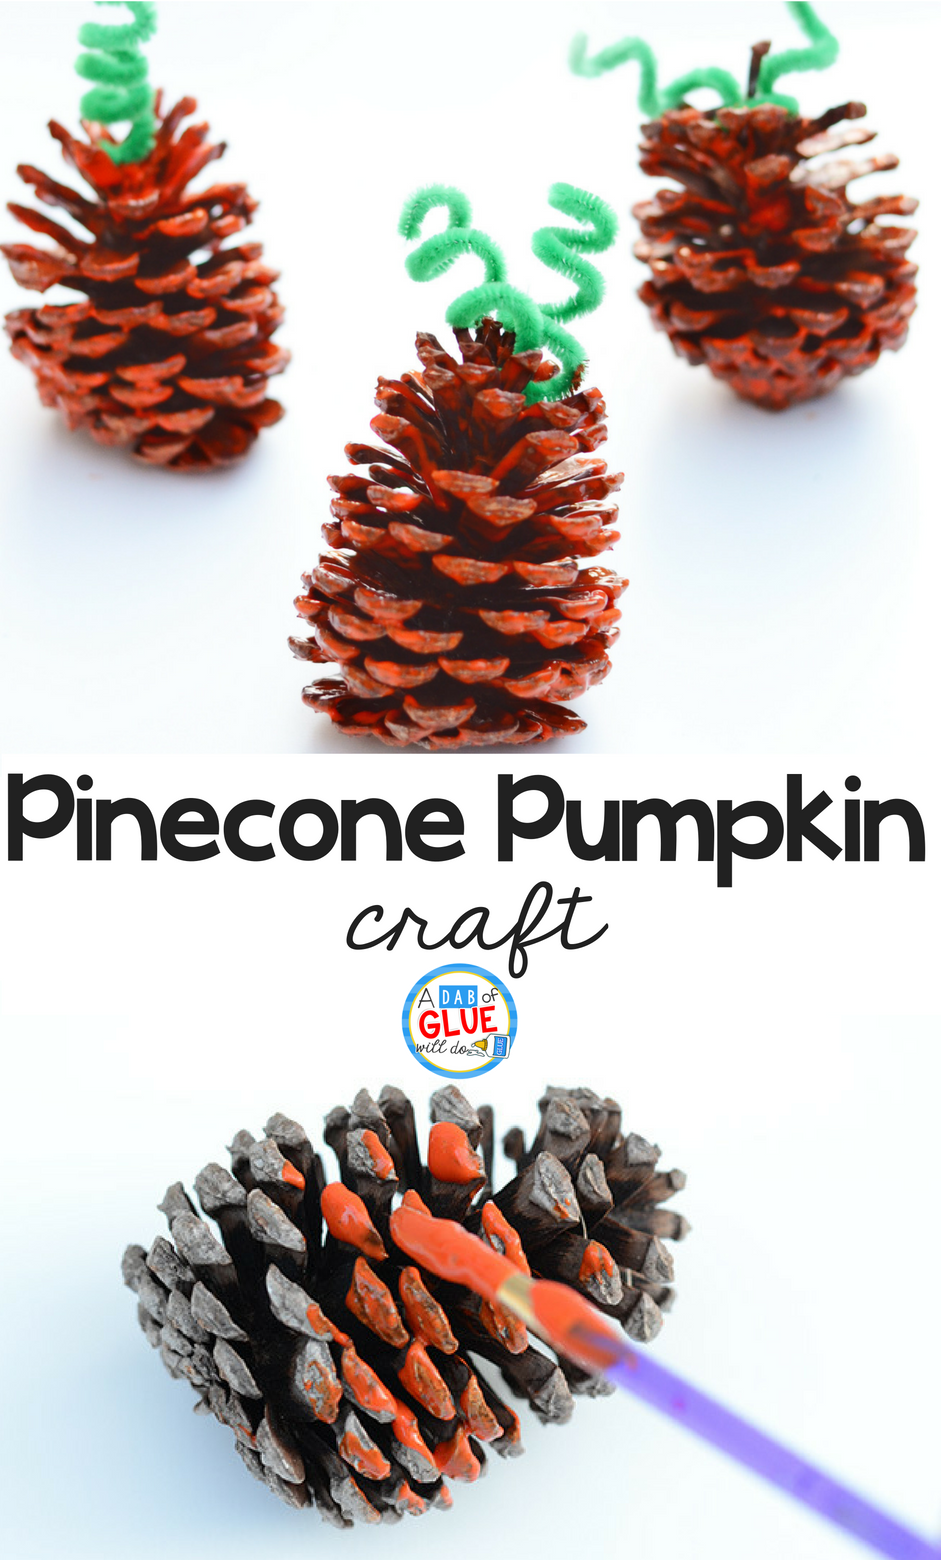 Pumpkins are one of my favorite things about fall and this cute and simple pinecone pumpkin craft is perfect for your students. Use pinecones from your nature walk collection or use smaller store-bought round pinecones along with just a few supplies to make this quick craft with preschool or kindergarten students to get festive for Autumn!